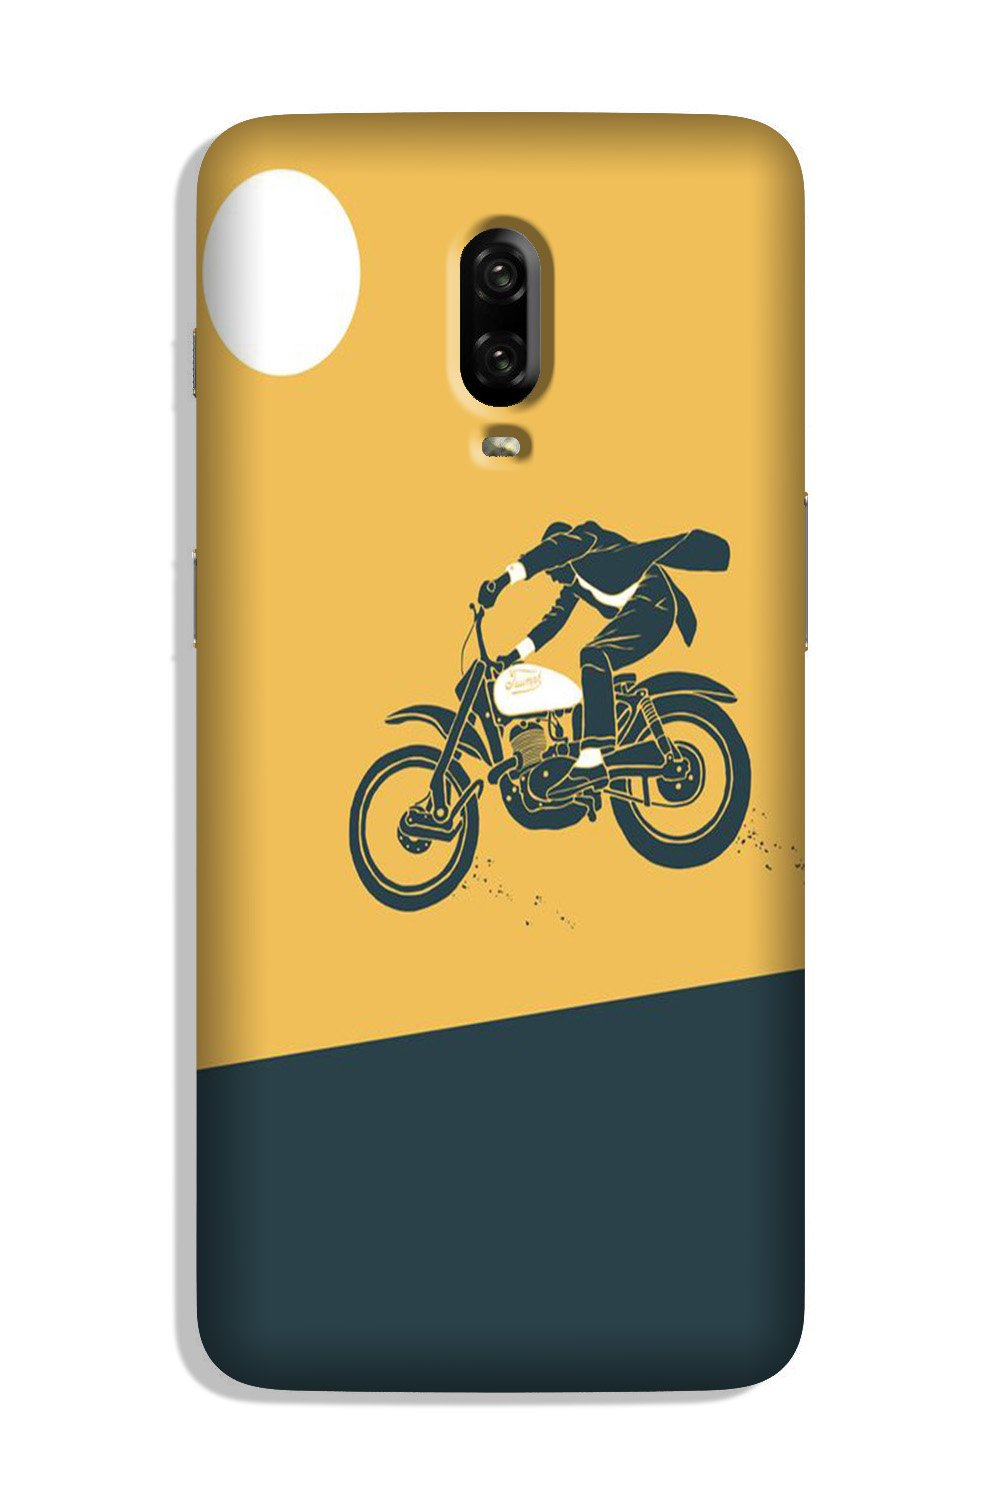 Bike Lovers Case for OnePlus 6T (Design No. 256)